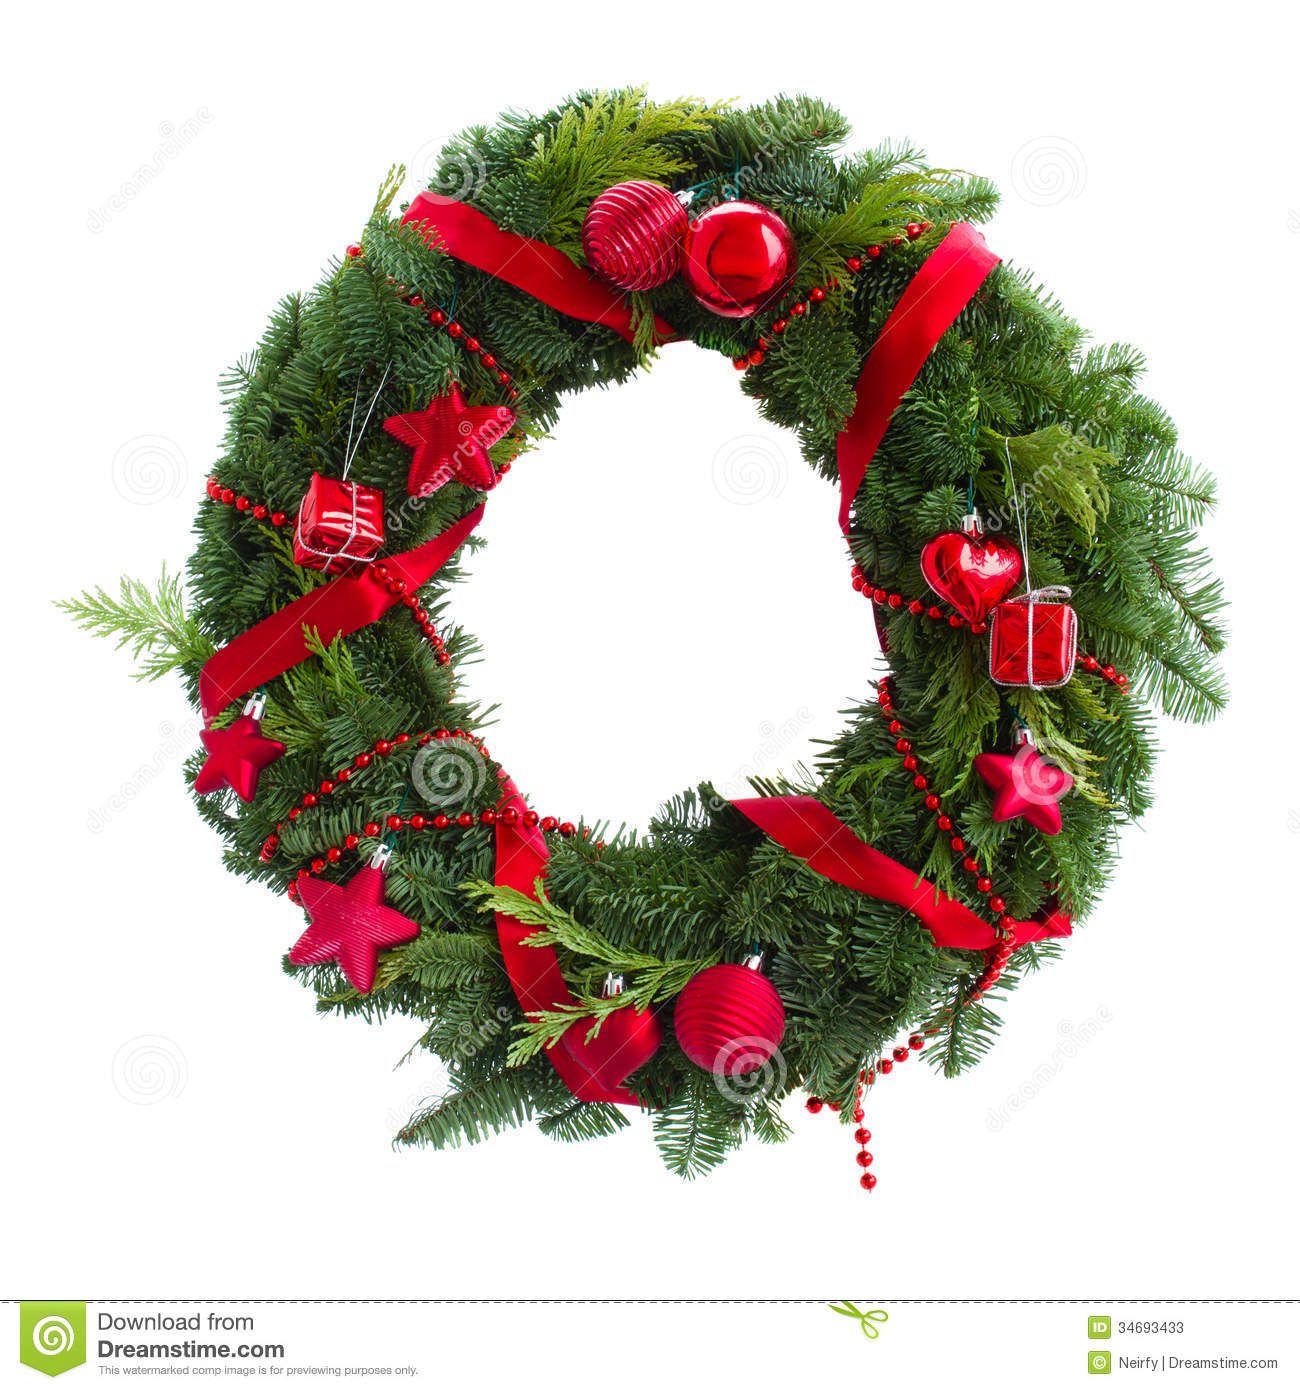 download green christmas wreath with red decorations stock image image of christmas background